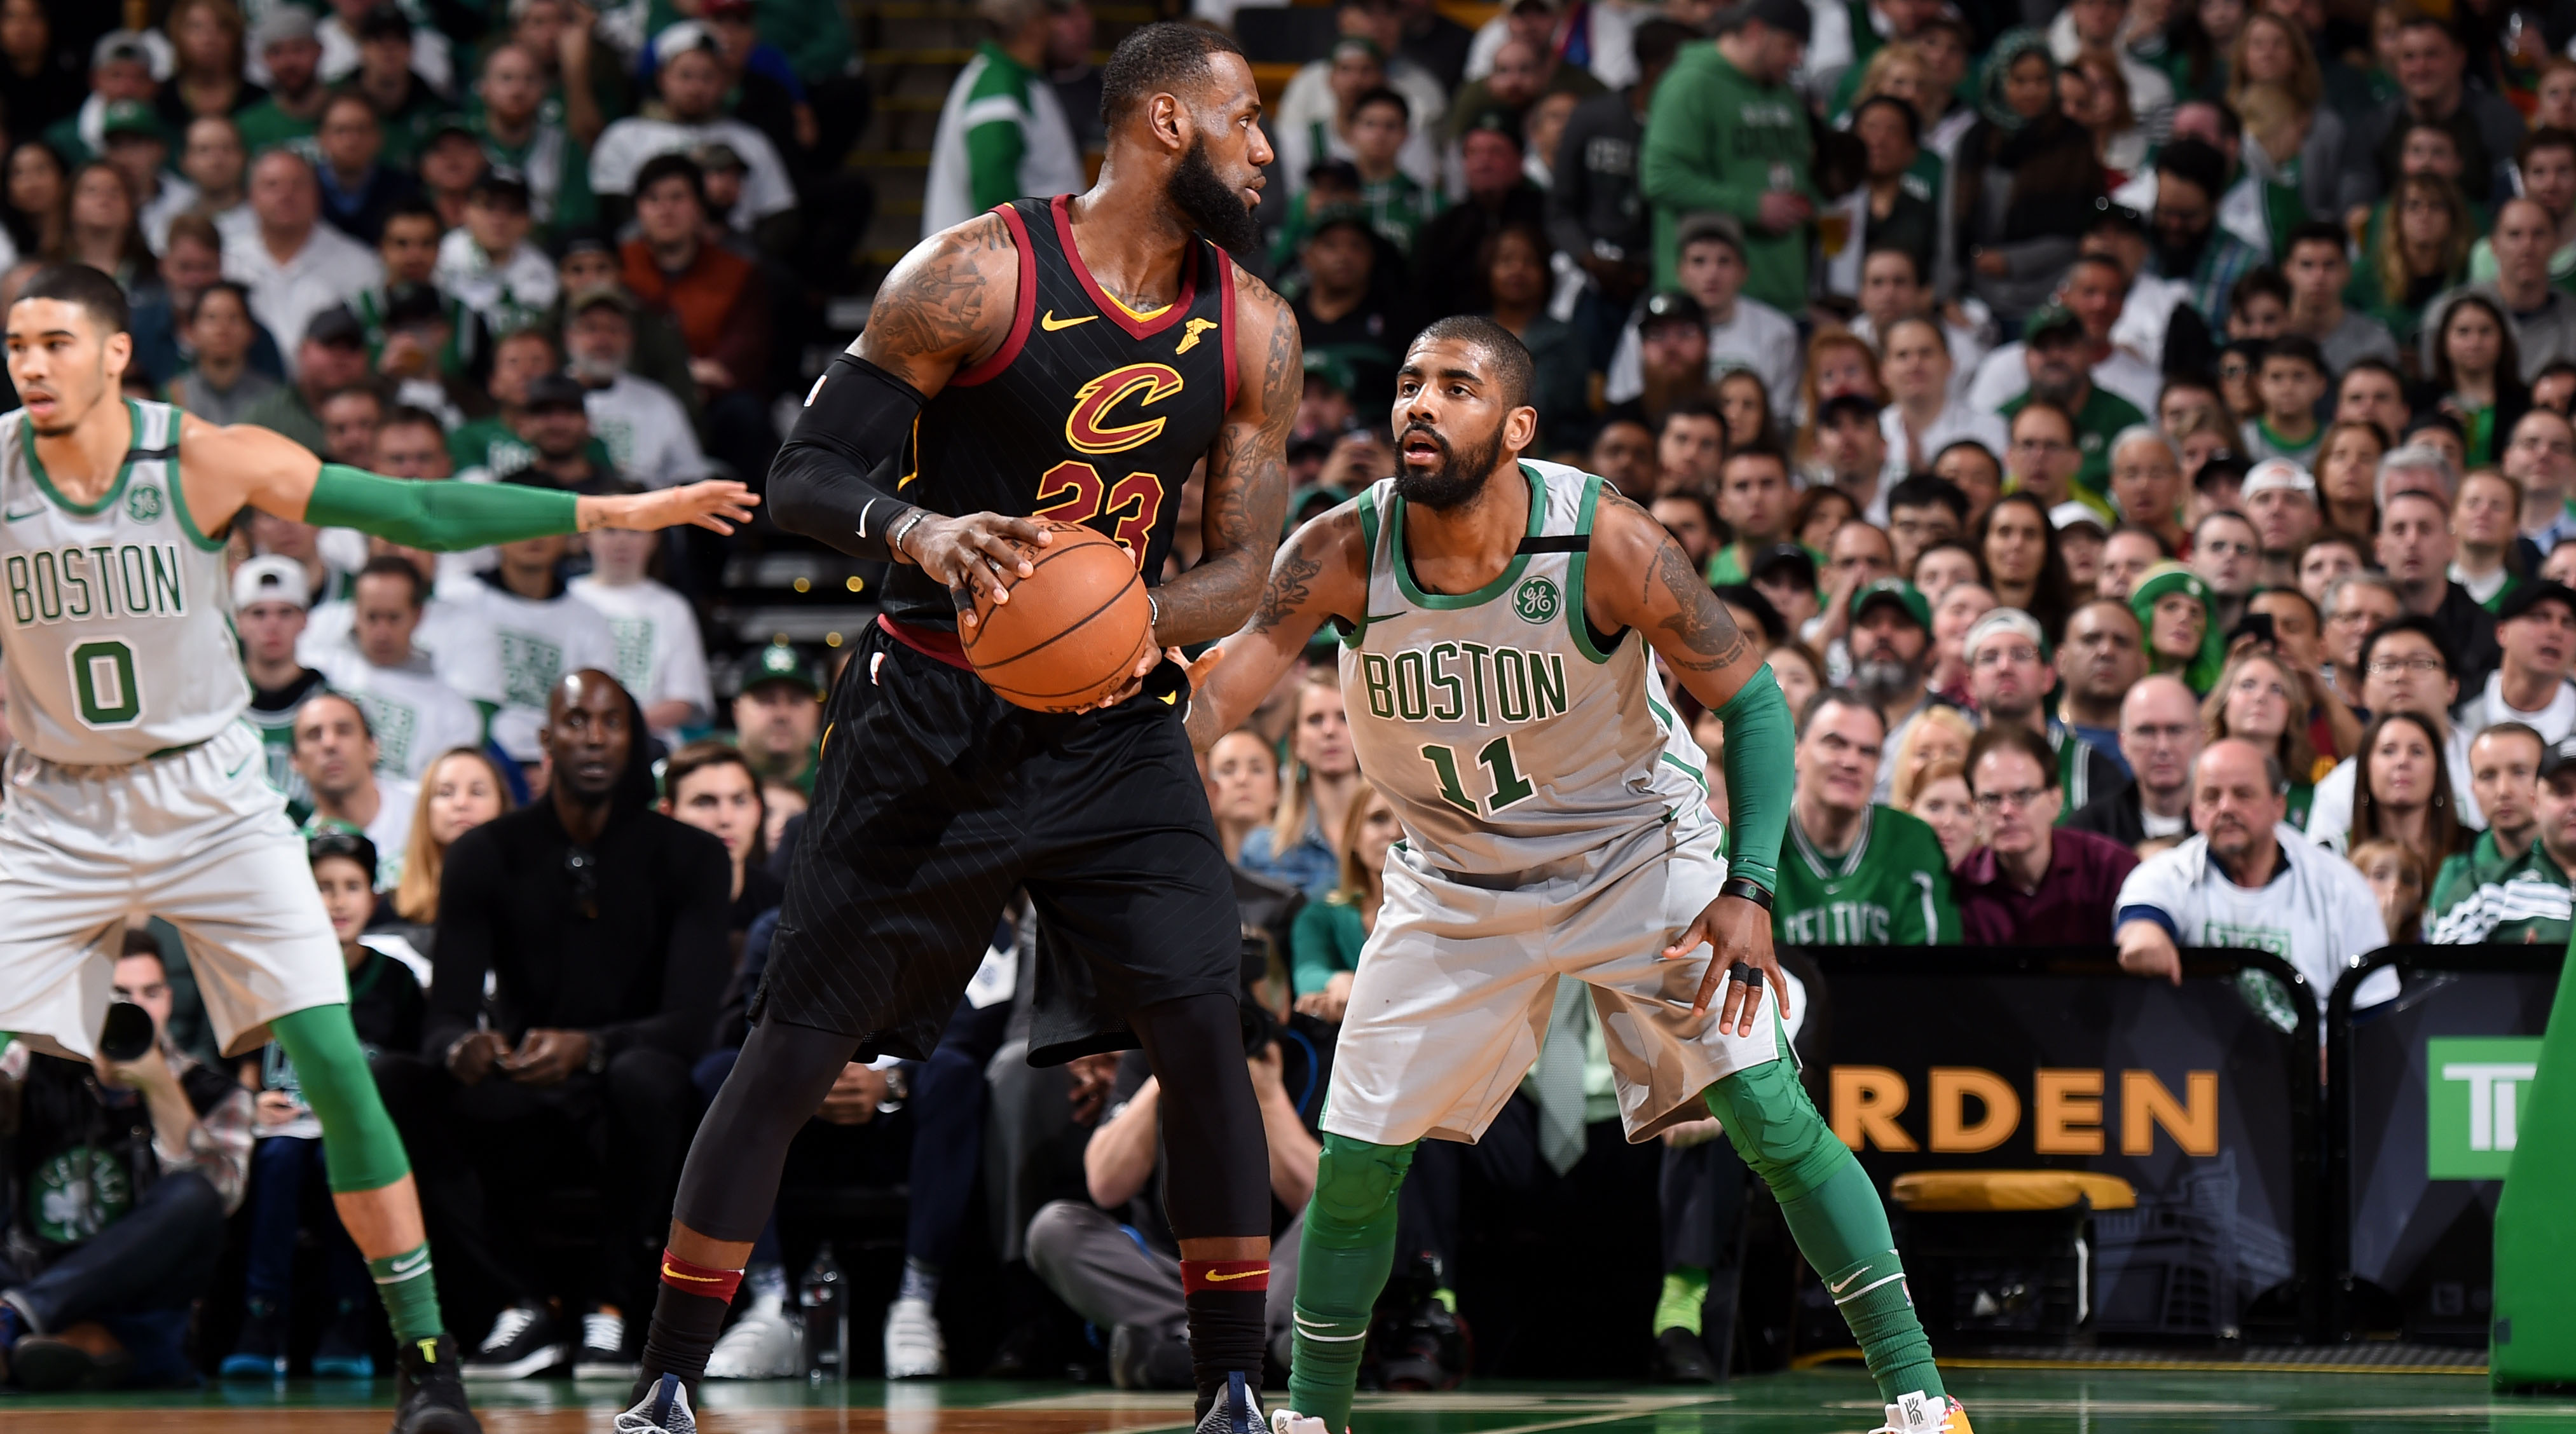 lebron james told cavaliers not to trade kyrie irving to celtics